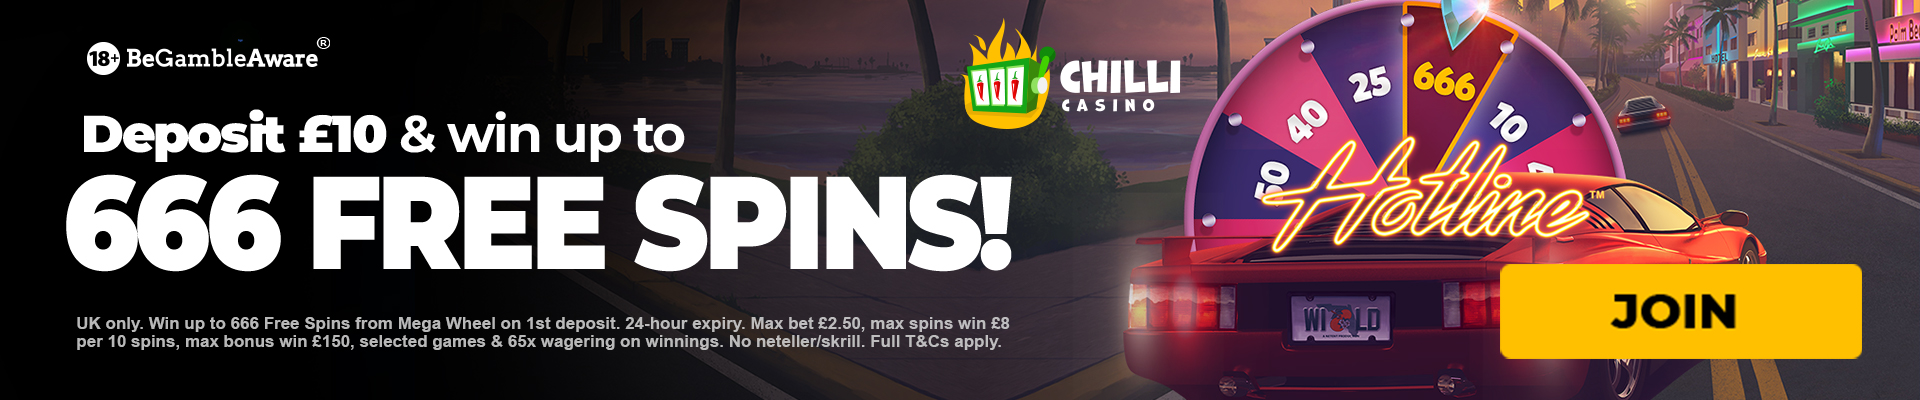 Chilli casino 666 free spins